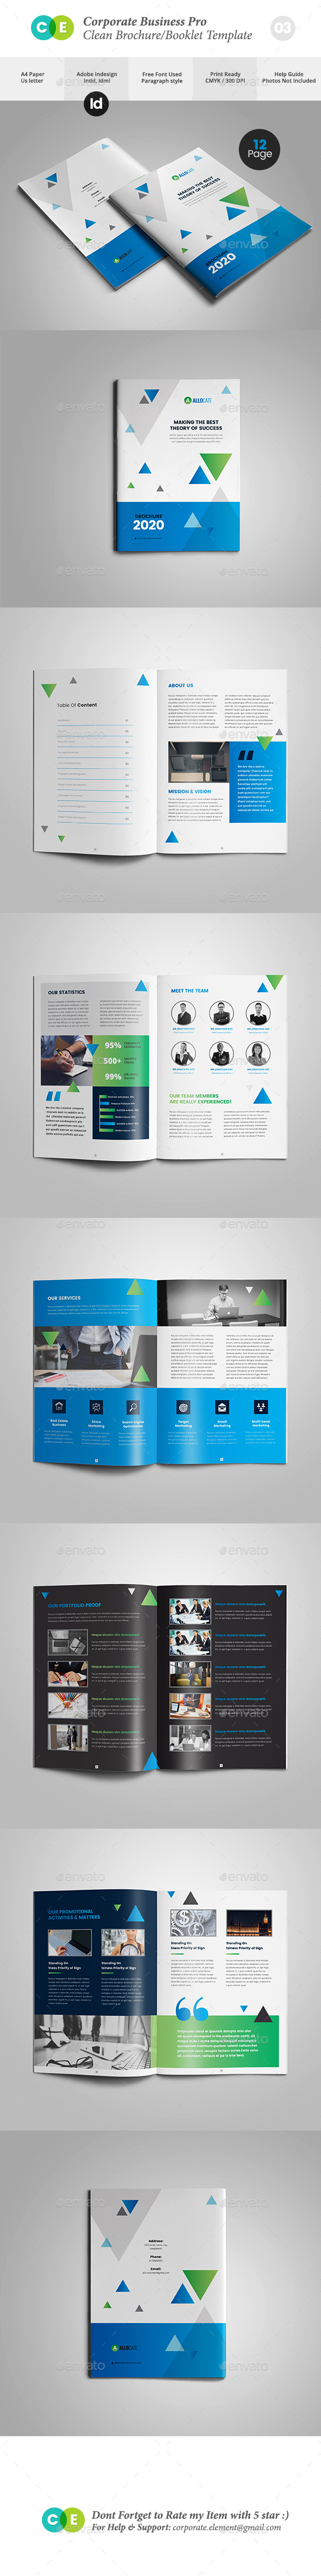 Business Clean Corporate Pro Brochure V03 - Brochures Print Templates